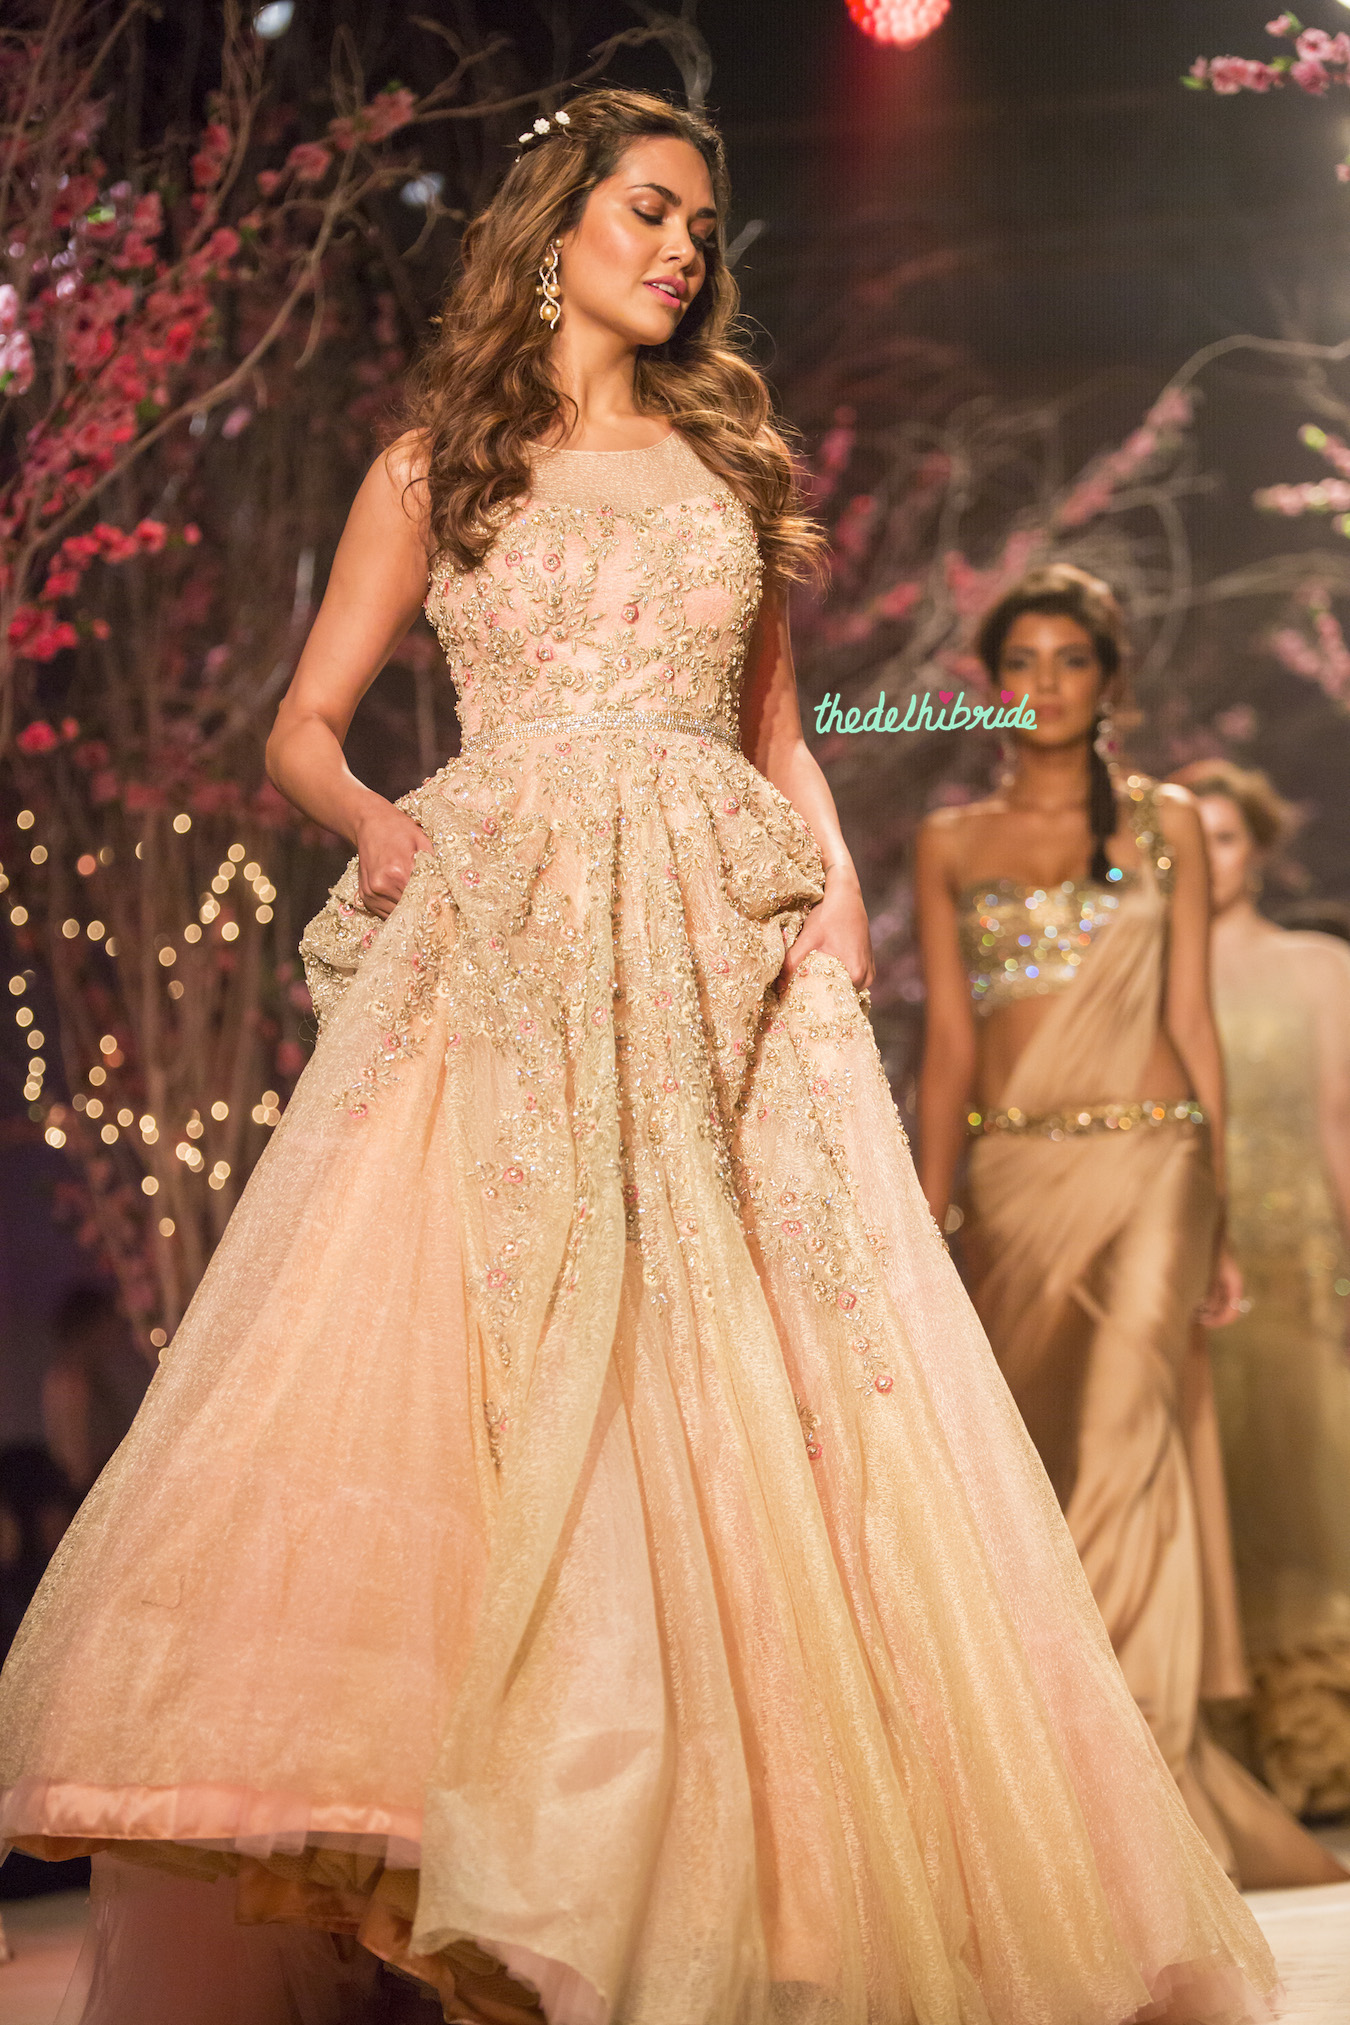 Jyotsna tiwari at india bridal fashion week 2014 for Wedding dresses online in india